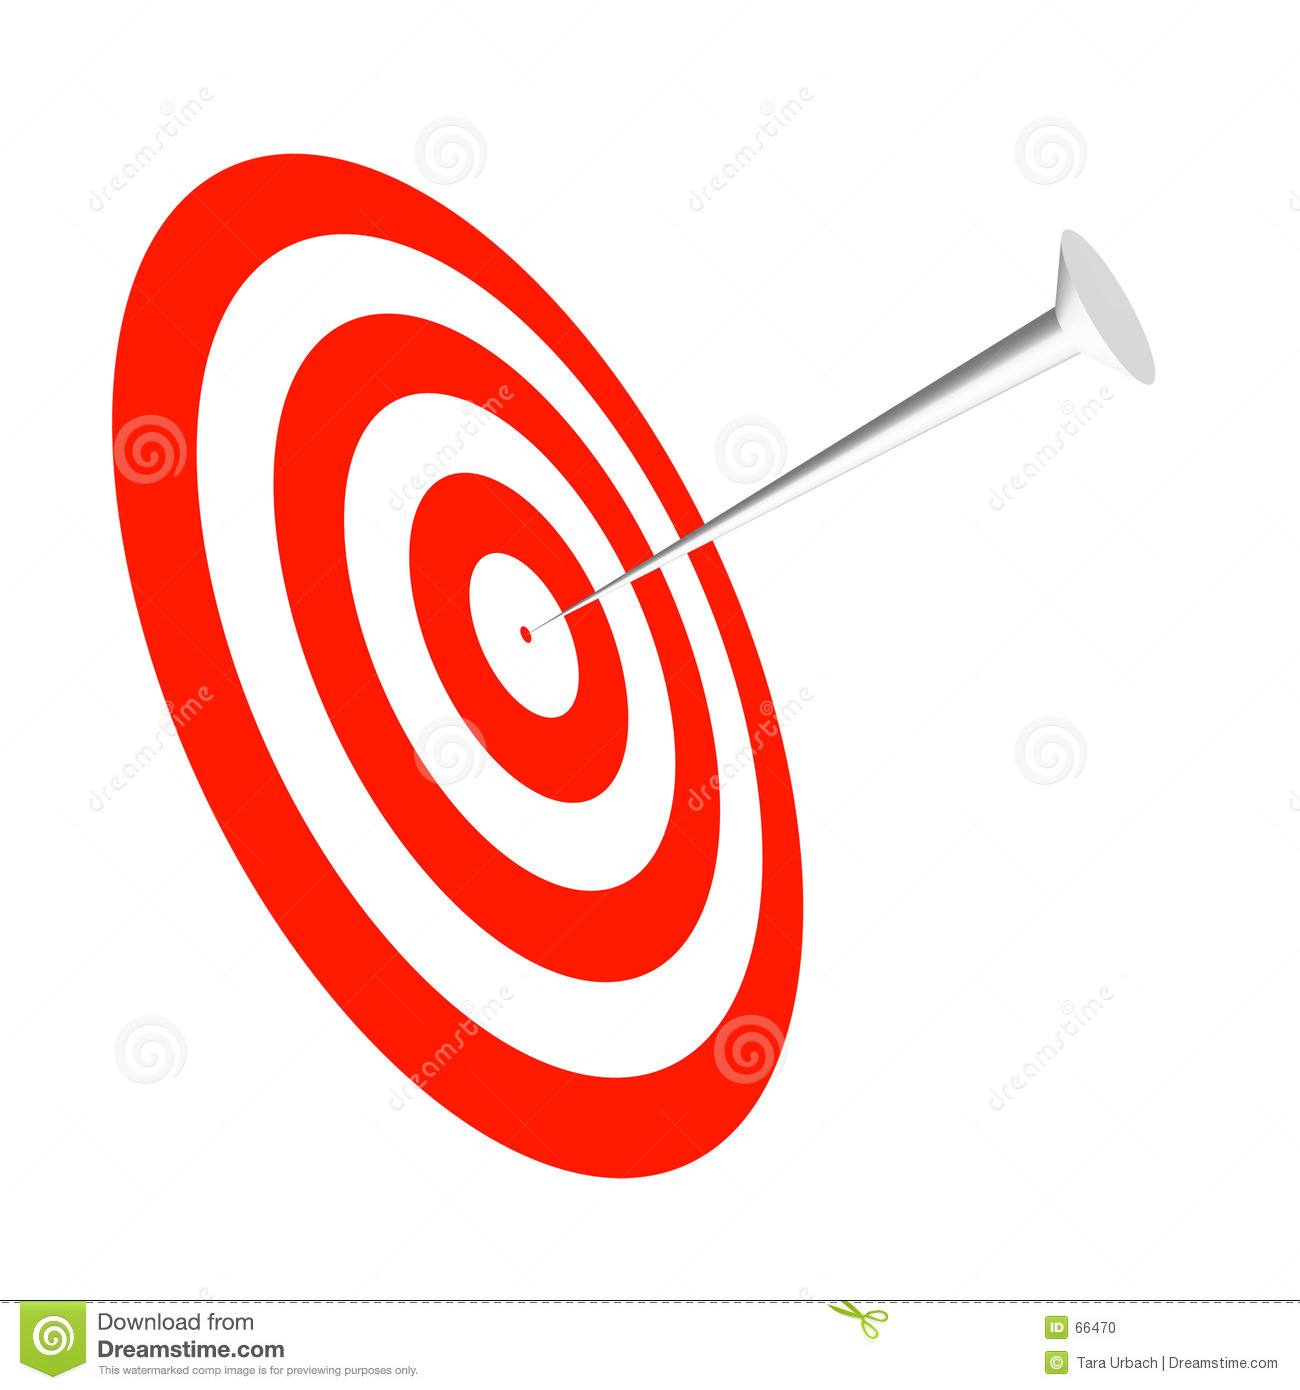 rendered target and nail to help drive your point home.